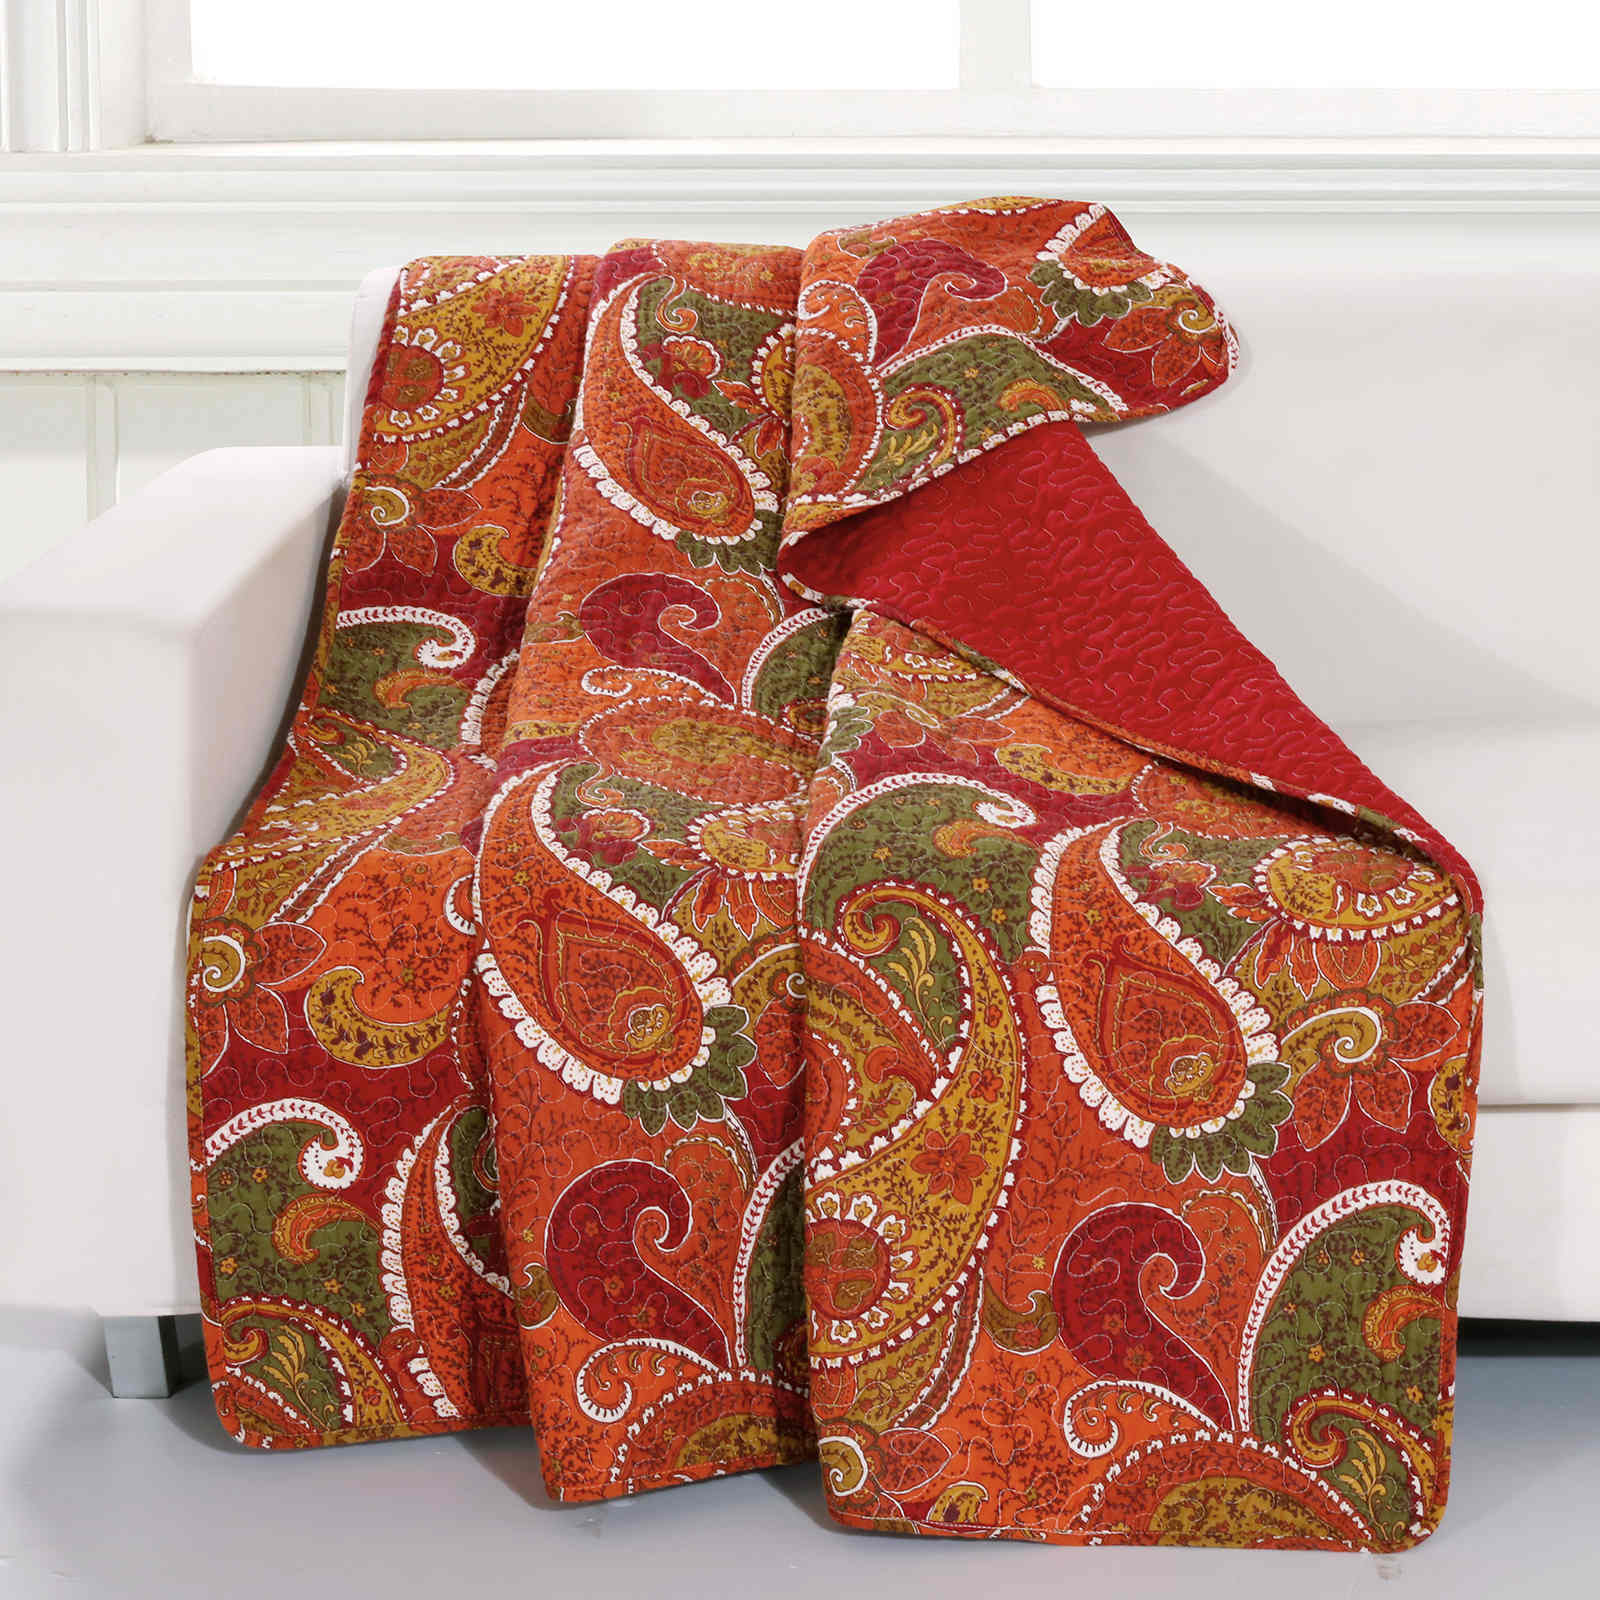 Tivoli Cinnamon Accessory Throw